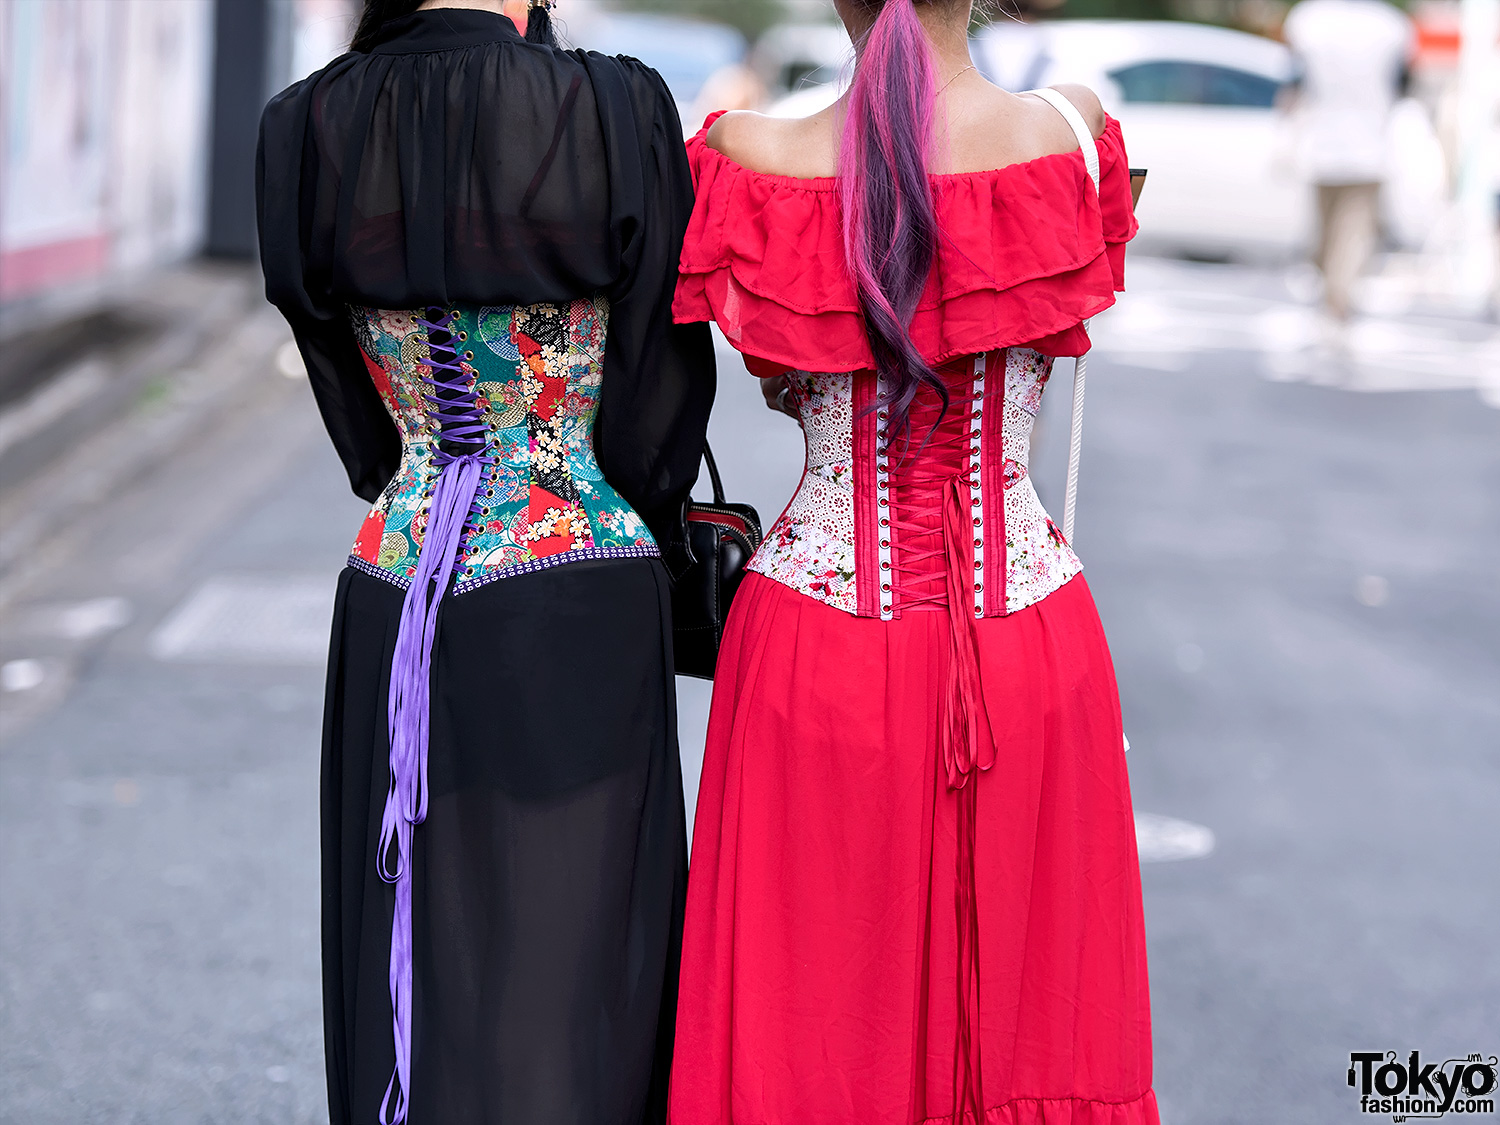 Handmade Japanese Corsets by Unisex Peanuts on the Street in Harajuku